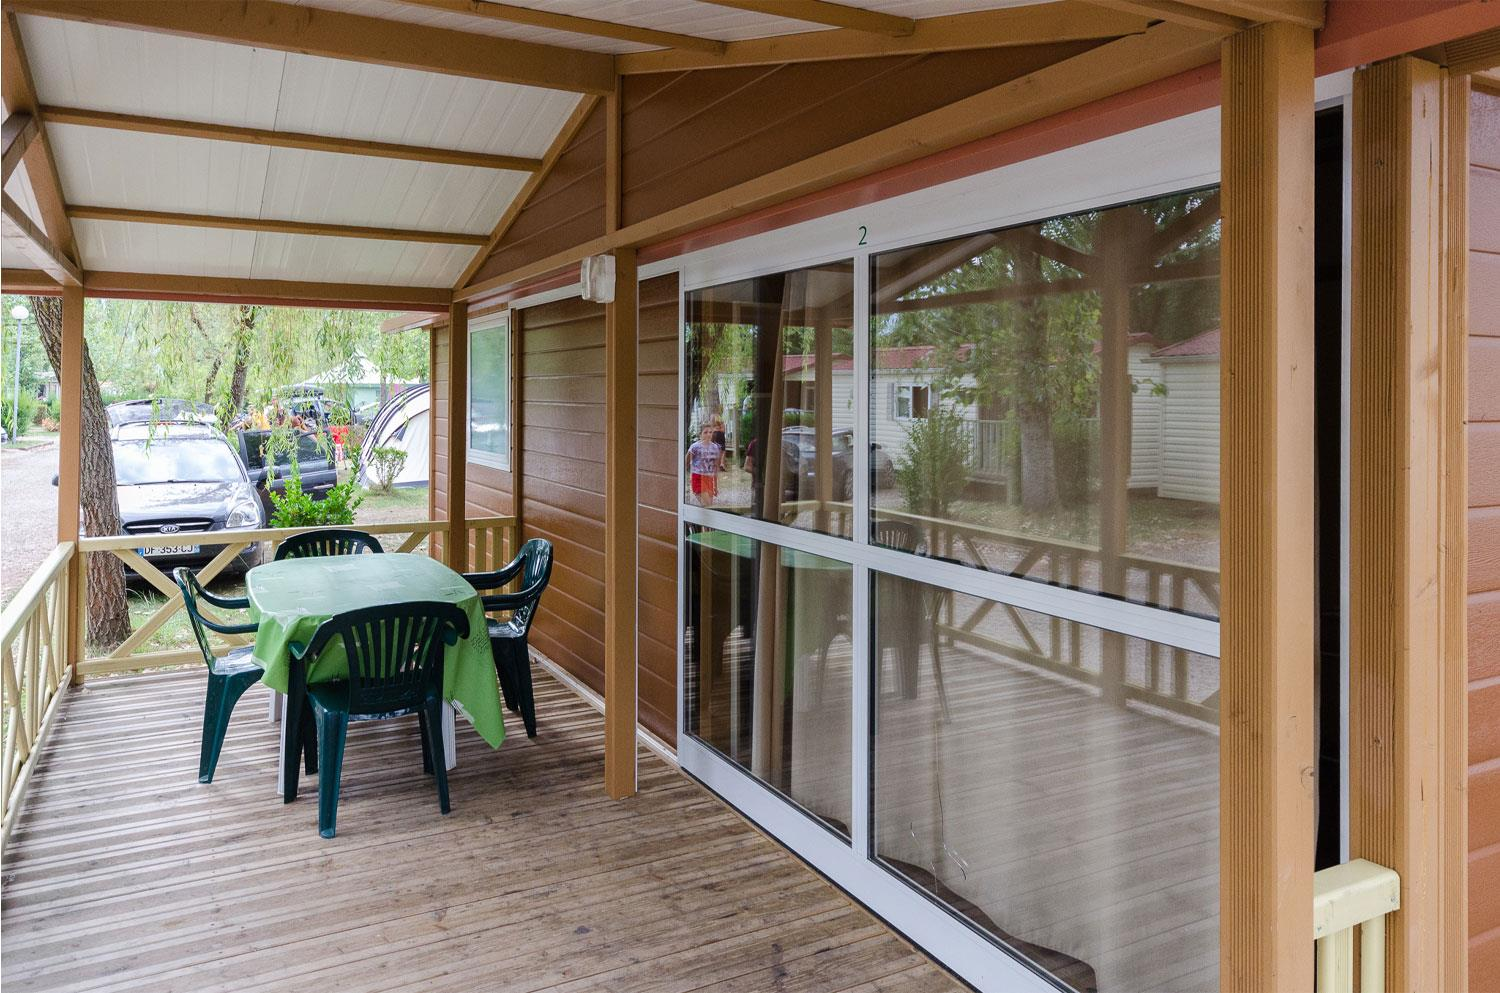 Accommodation - Chalet Croisière Wheelchair Friendly 2 Bedrooms - Camping Ile de la Comtesse